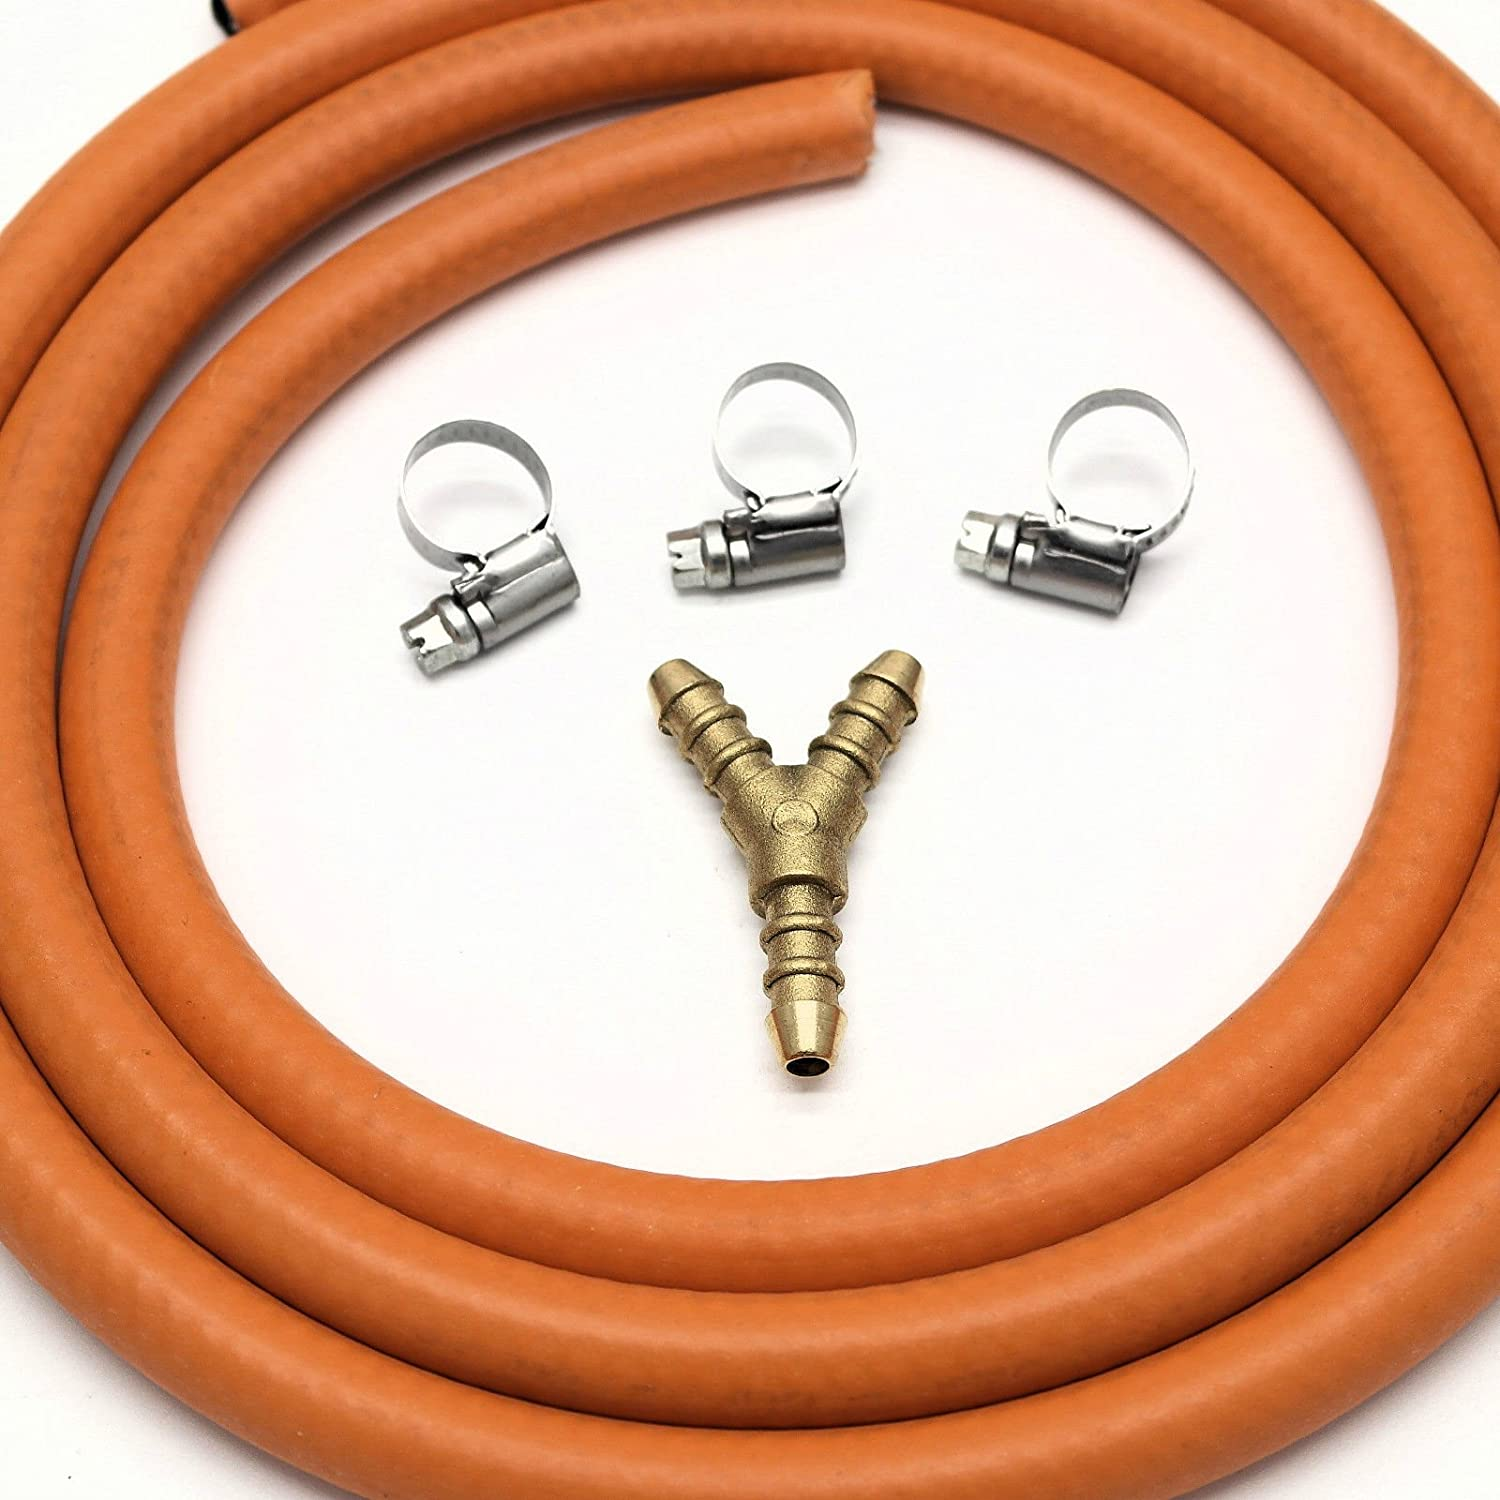 3 WAY Y CONNECTOR SPLITTER KIT WITH 2mt 8mm I/D GAS HOSE & 3 CLIPS Unbranded